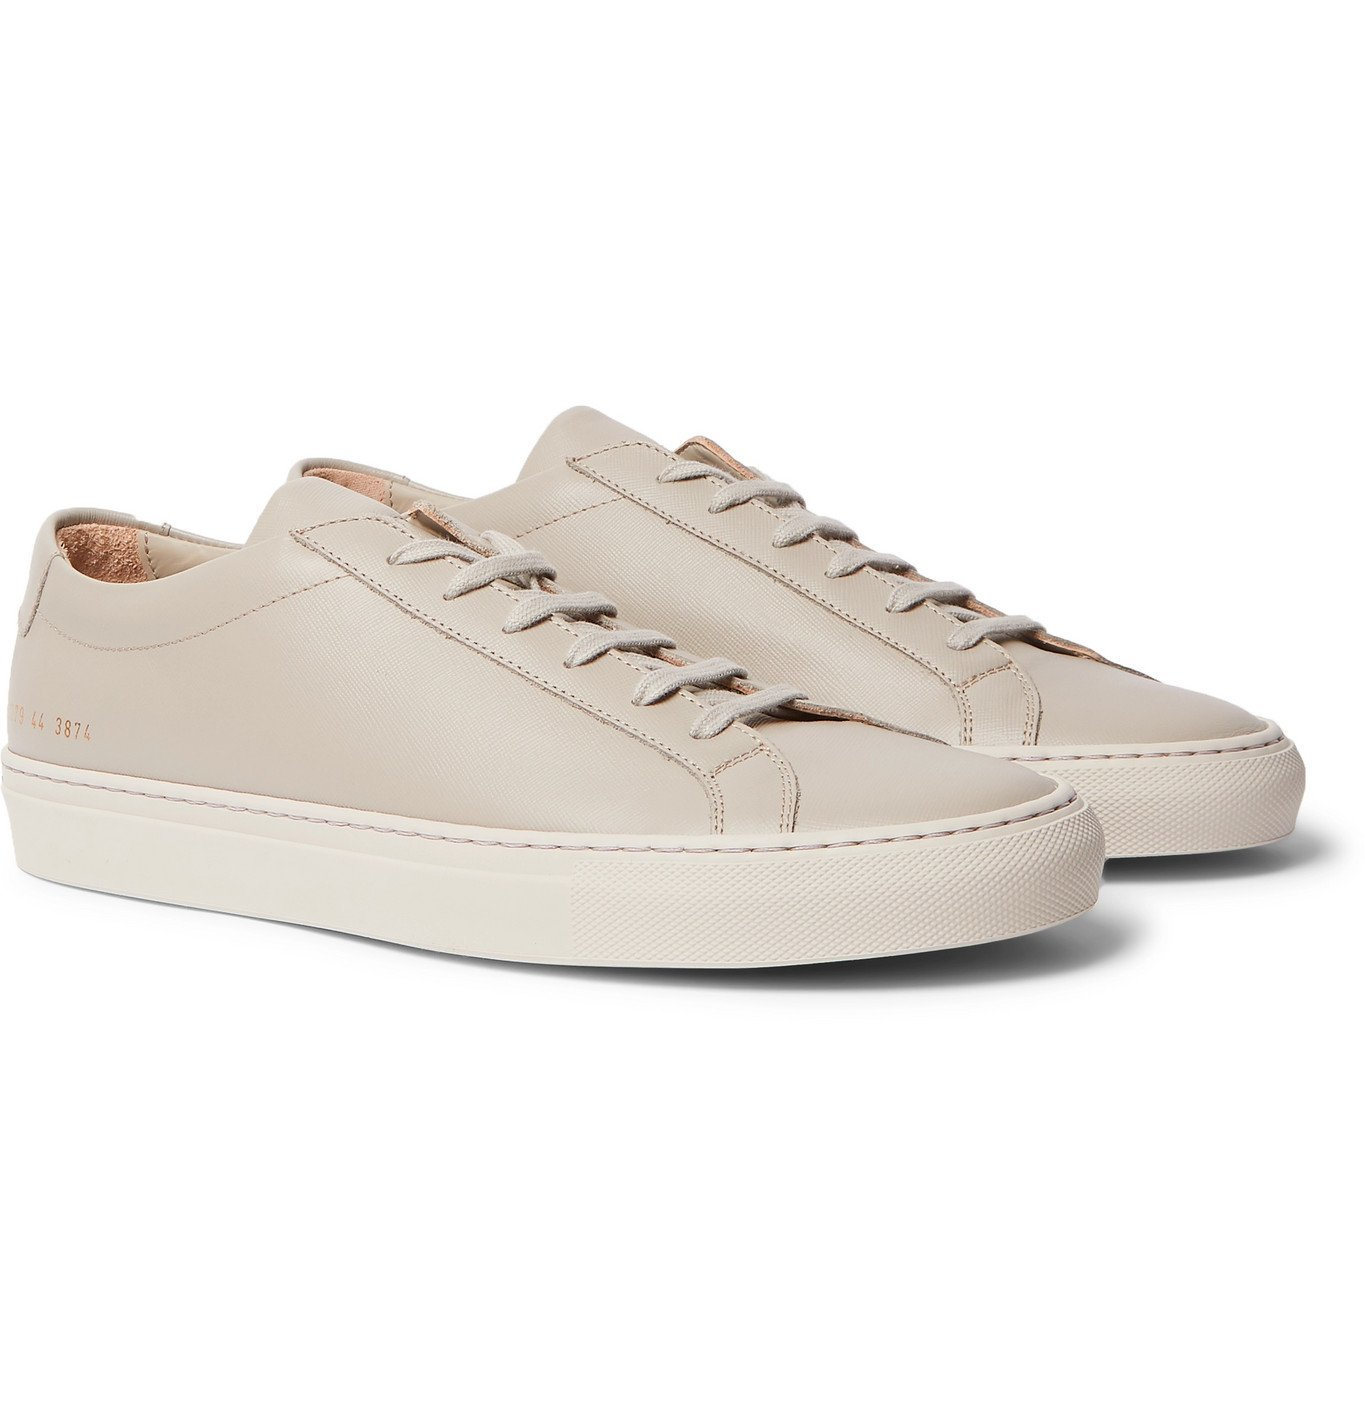 Common Projects - Original Achilles Saffiano Leather Sneakers - Gray